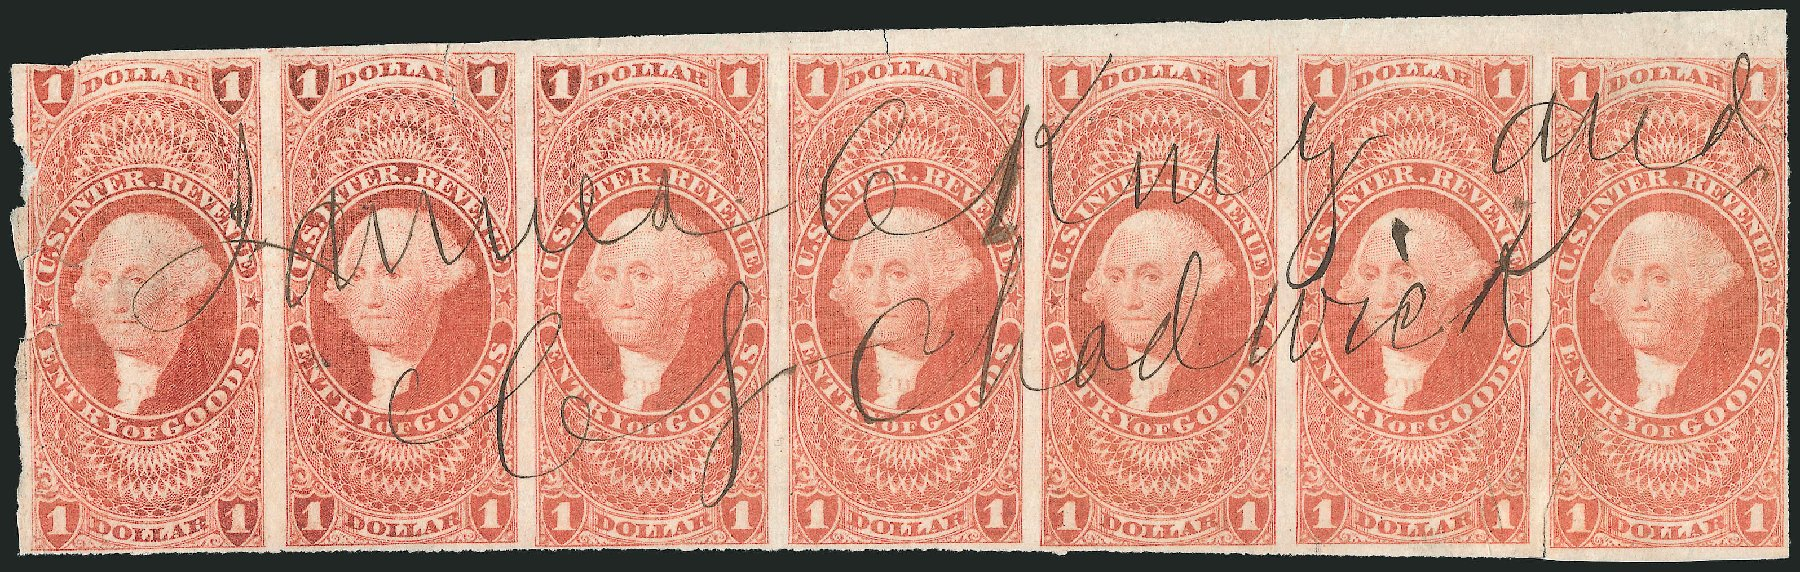 Costs of US Stamp Scott Cat. R67 - US$1.00 1862 Revenue Entry of Goods. Robert Siegel Auction Galleries, Dec 2014, Sale 1089, Lot 352